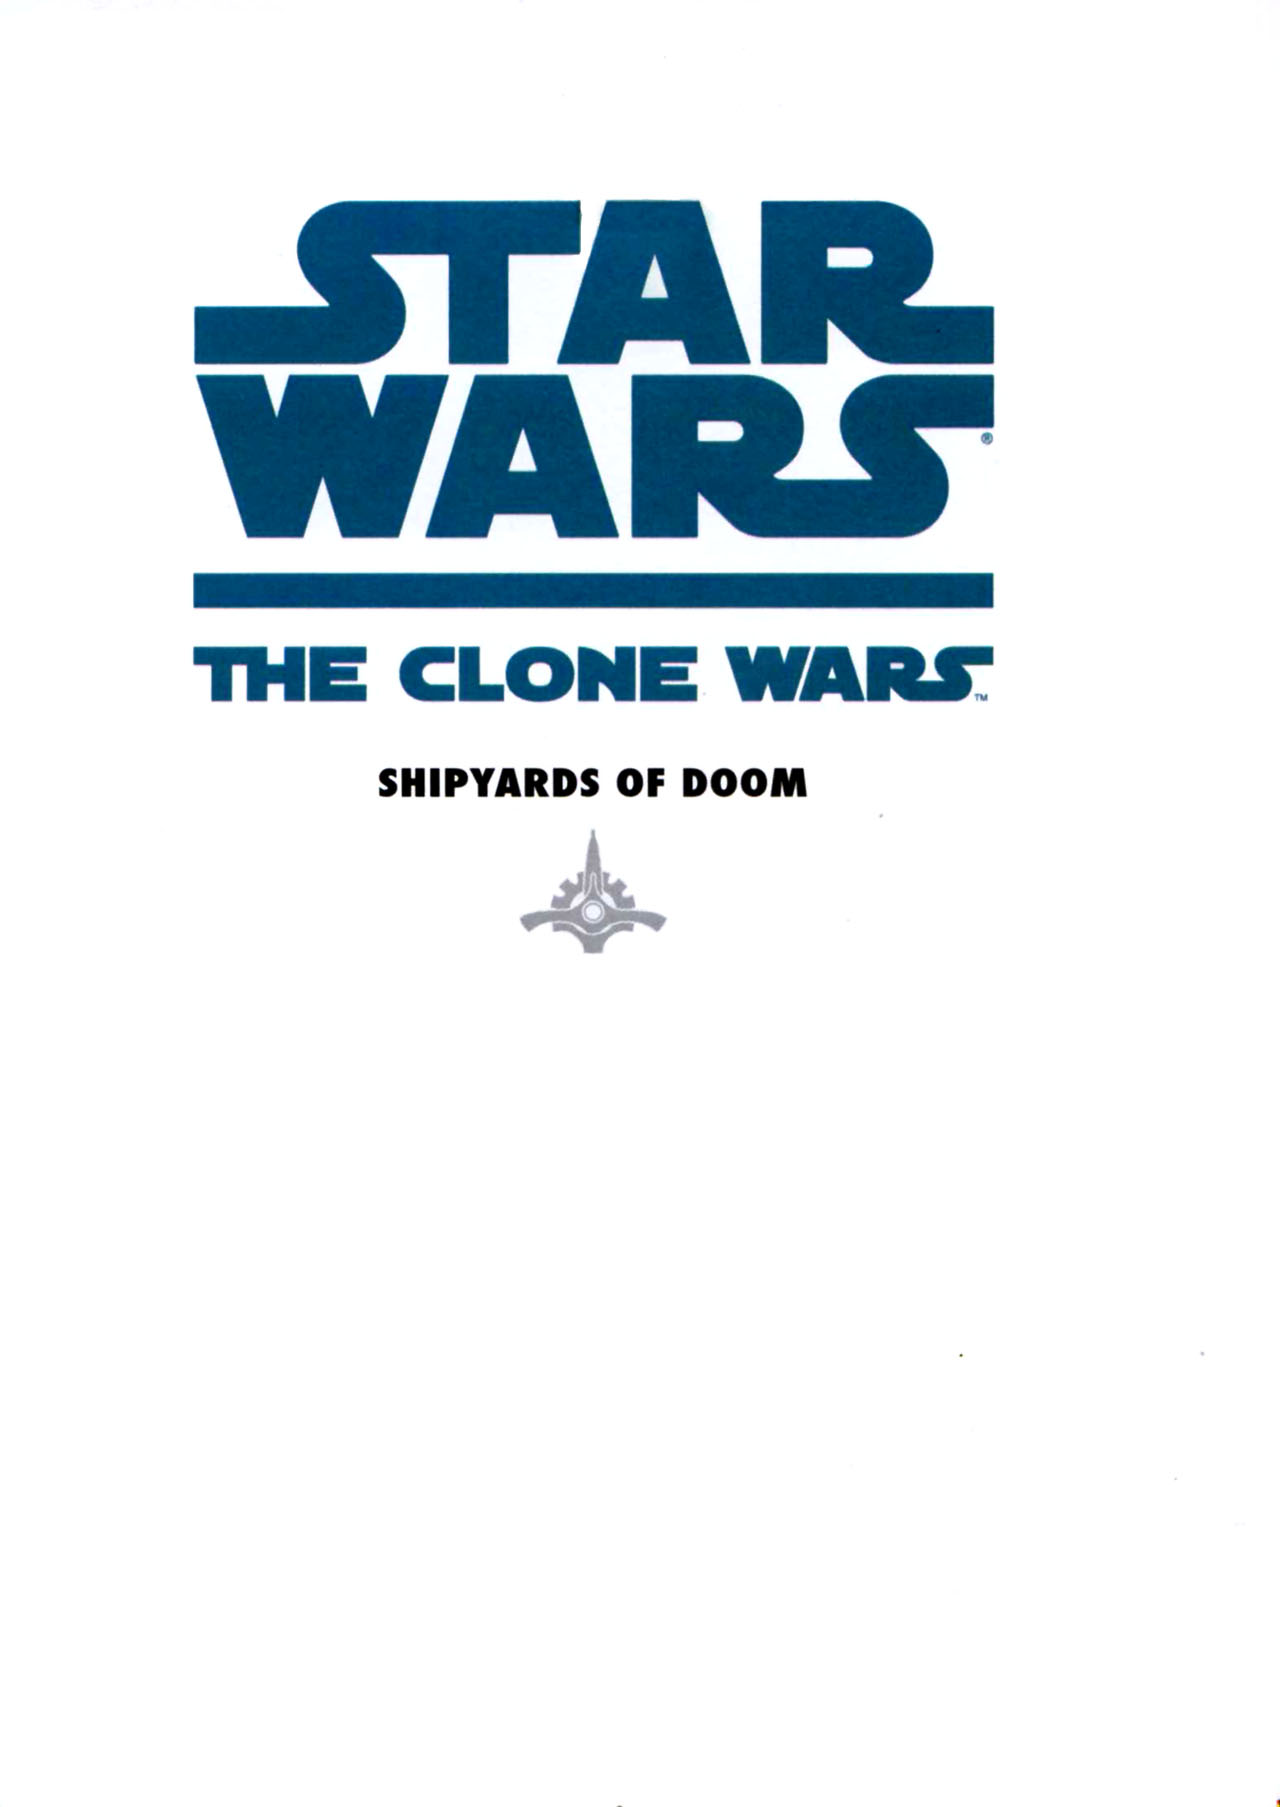 Read online Star Wars: The Clone Wars - Shipyards of Doom comic -  Issue # Full - 3